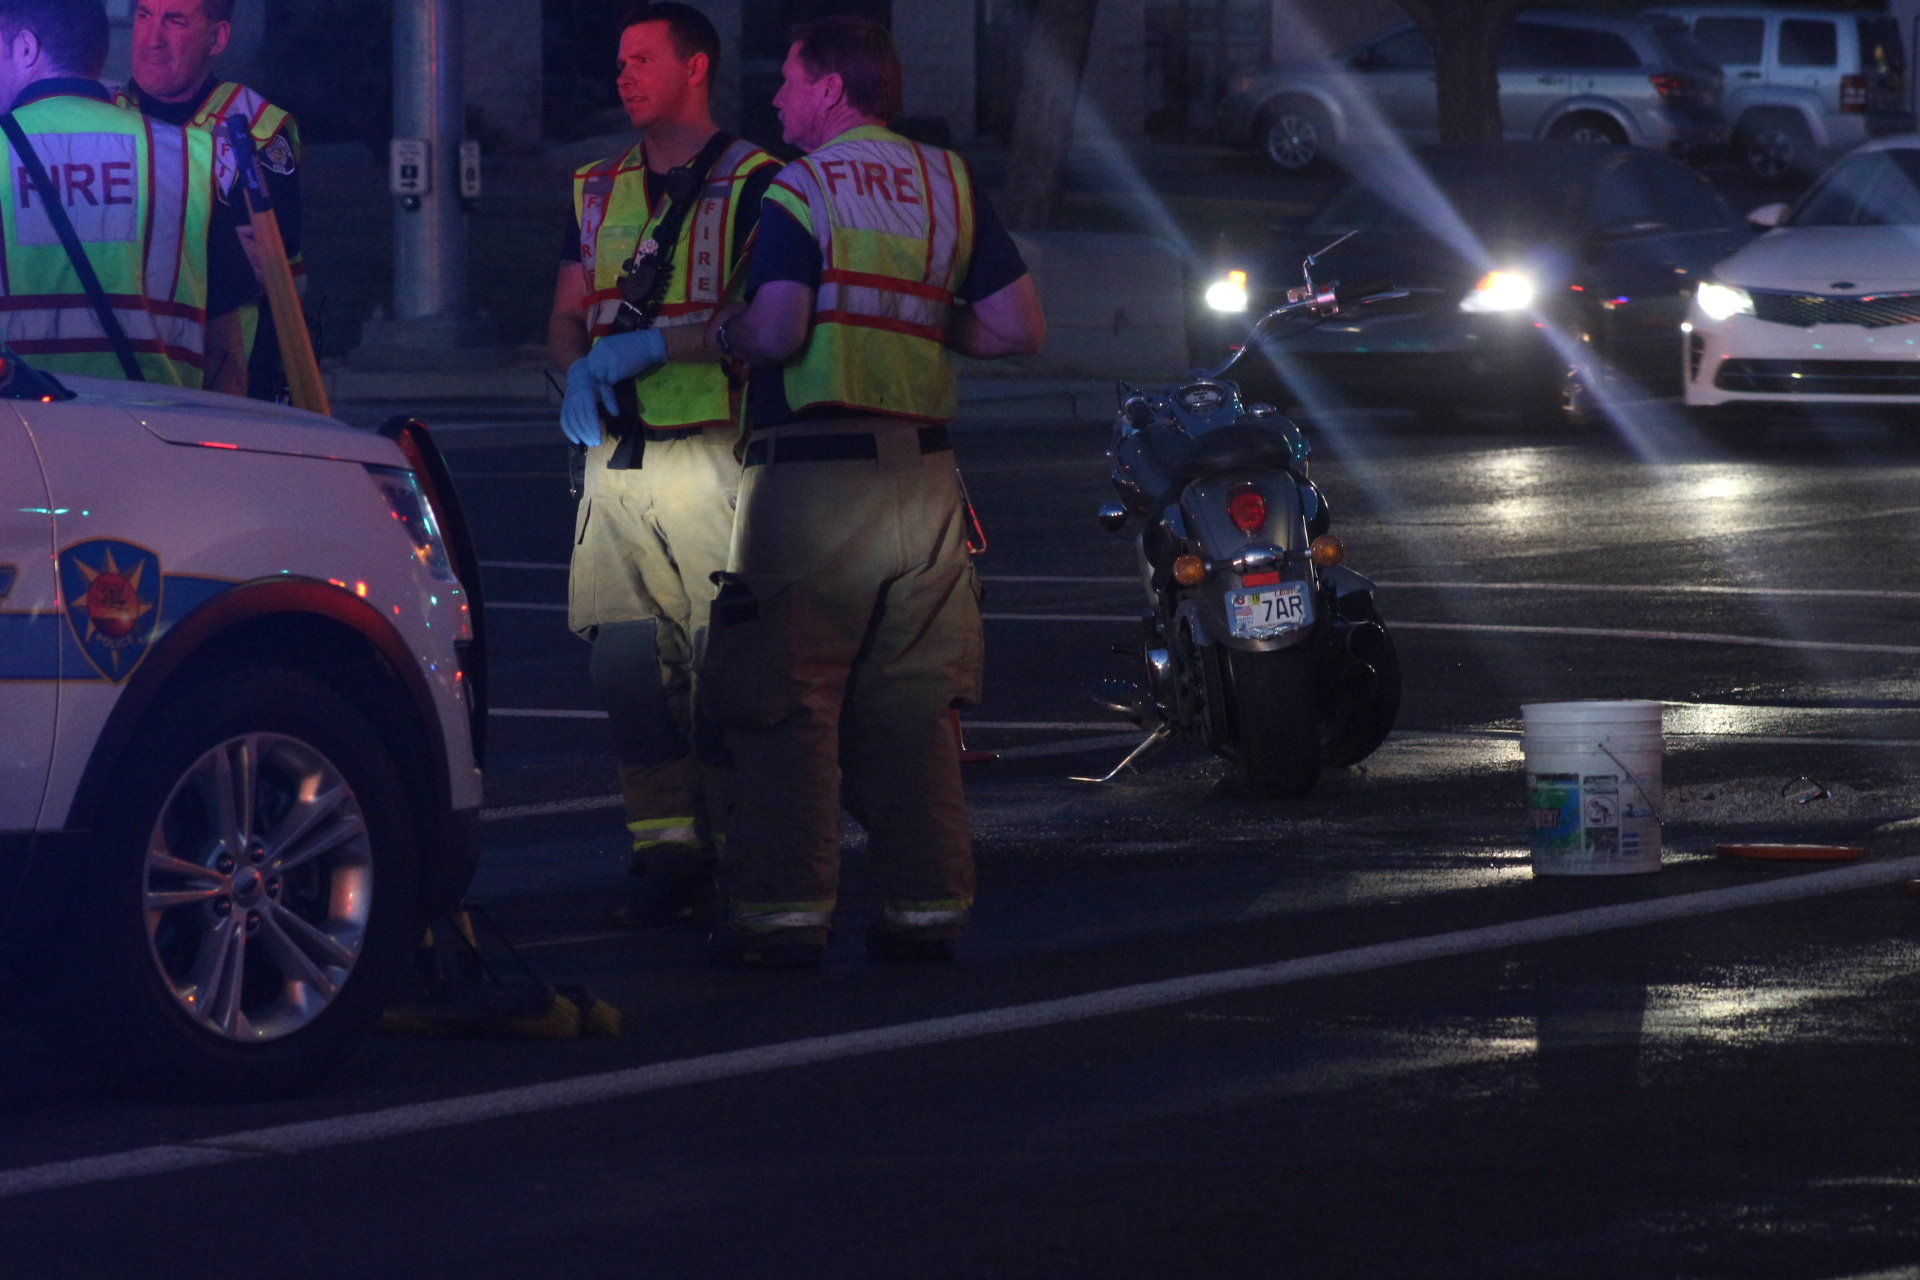 auto-motorcycle crash on riverside drive results in trip to hospital